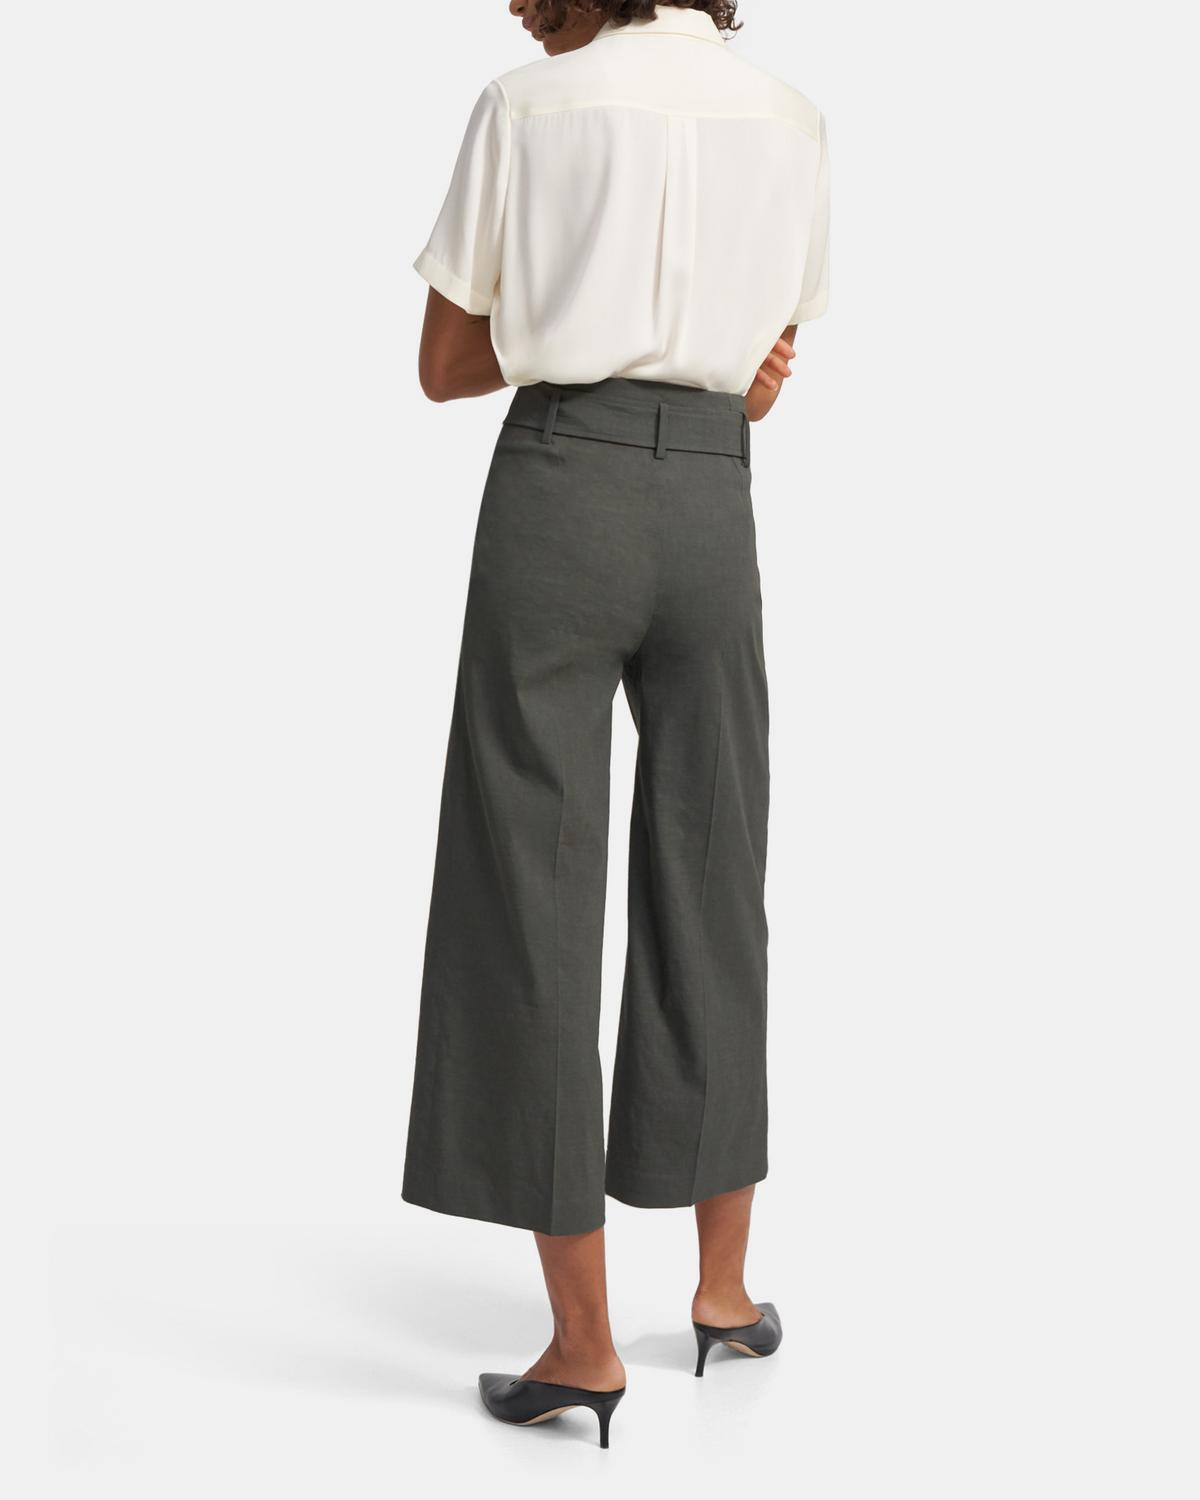 Belted Cropped Pant in Good Linen